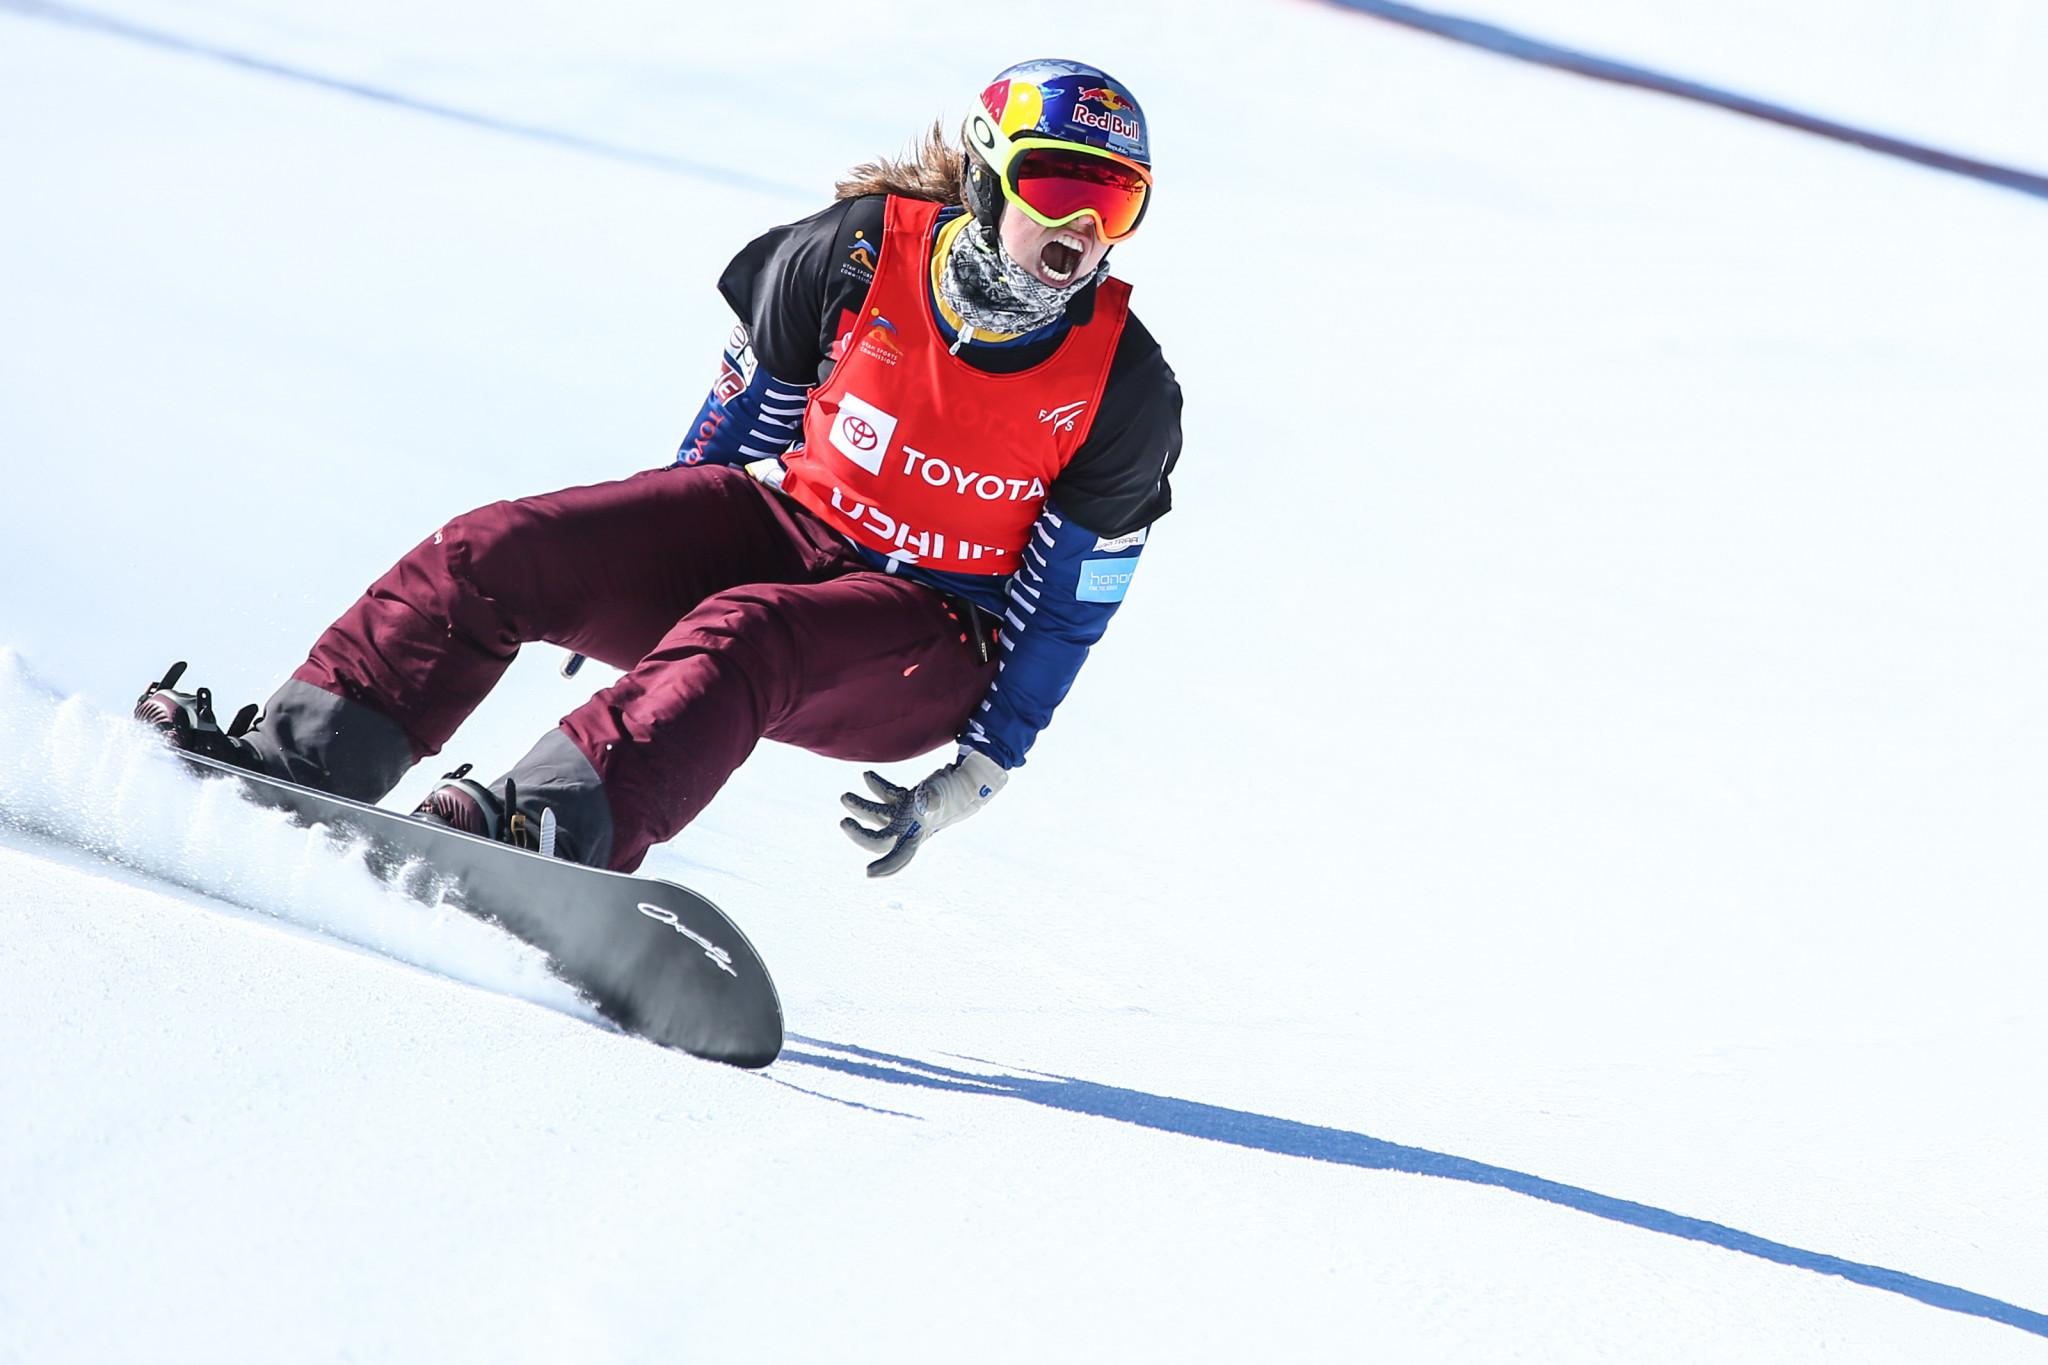 Samková wins in Spain to draw level with Jacobellis in race for overall FIS Snowboard Cross World Cup title